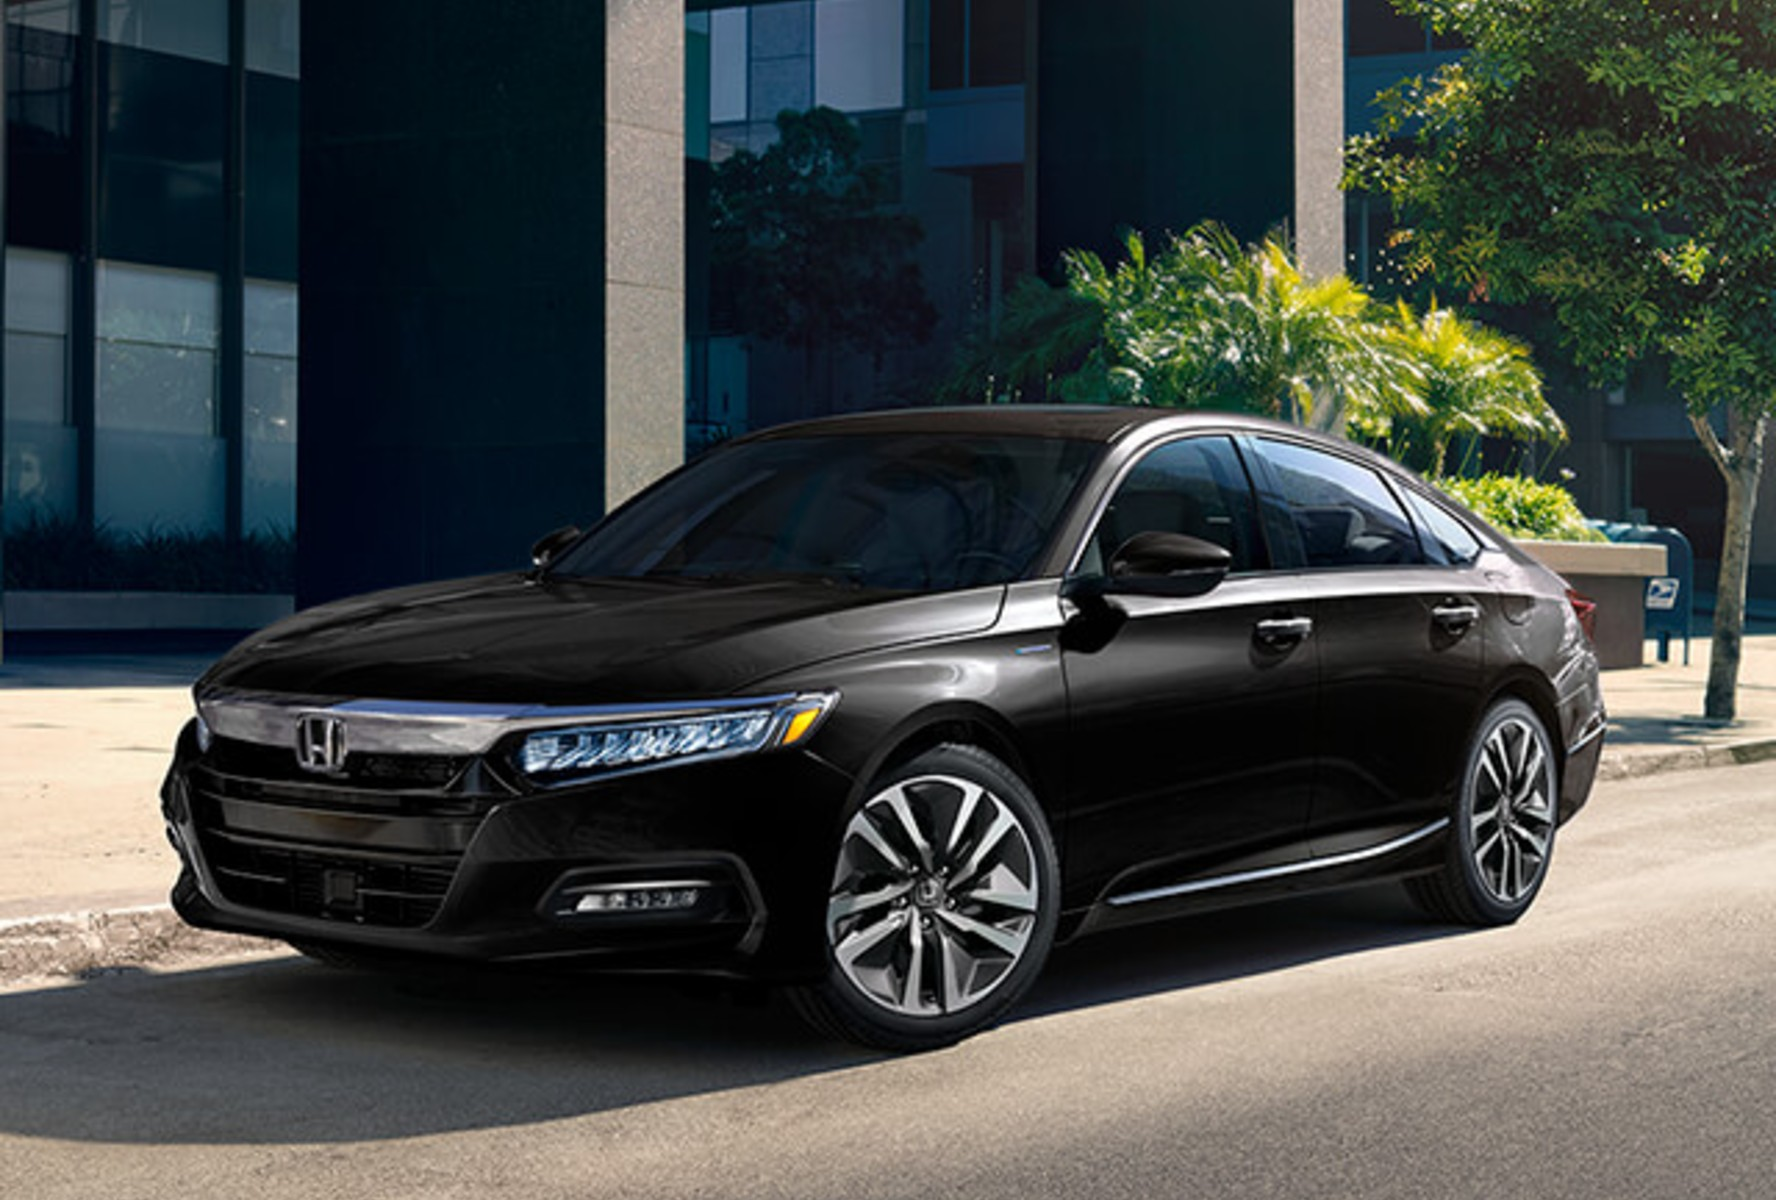 The high performance 2019 Honda Accord